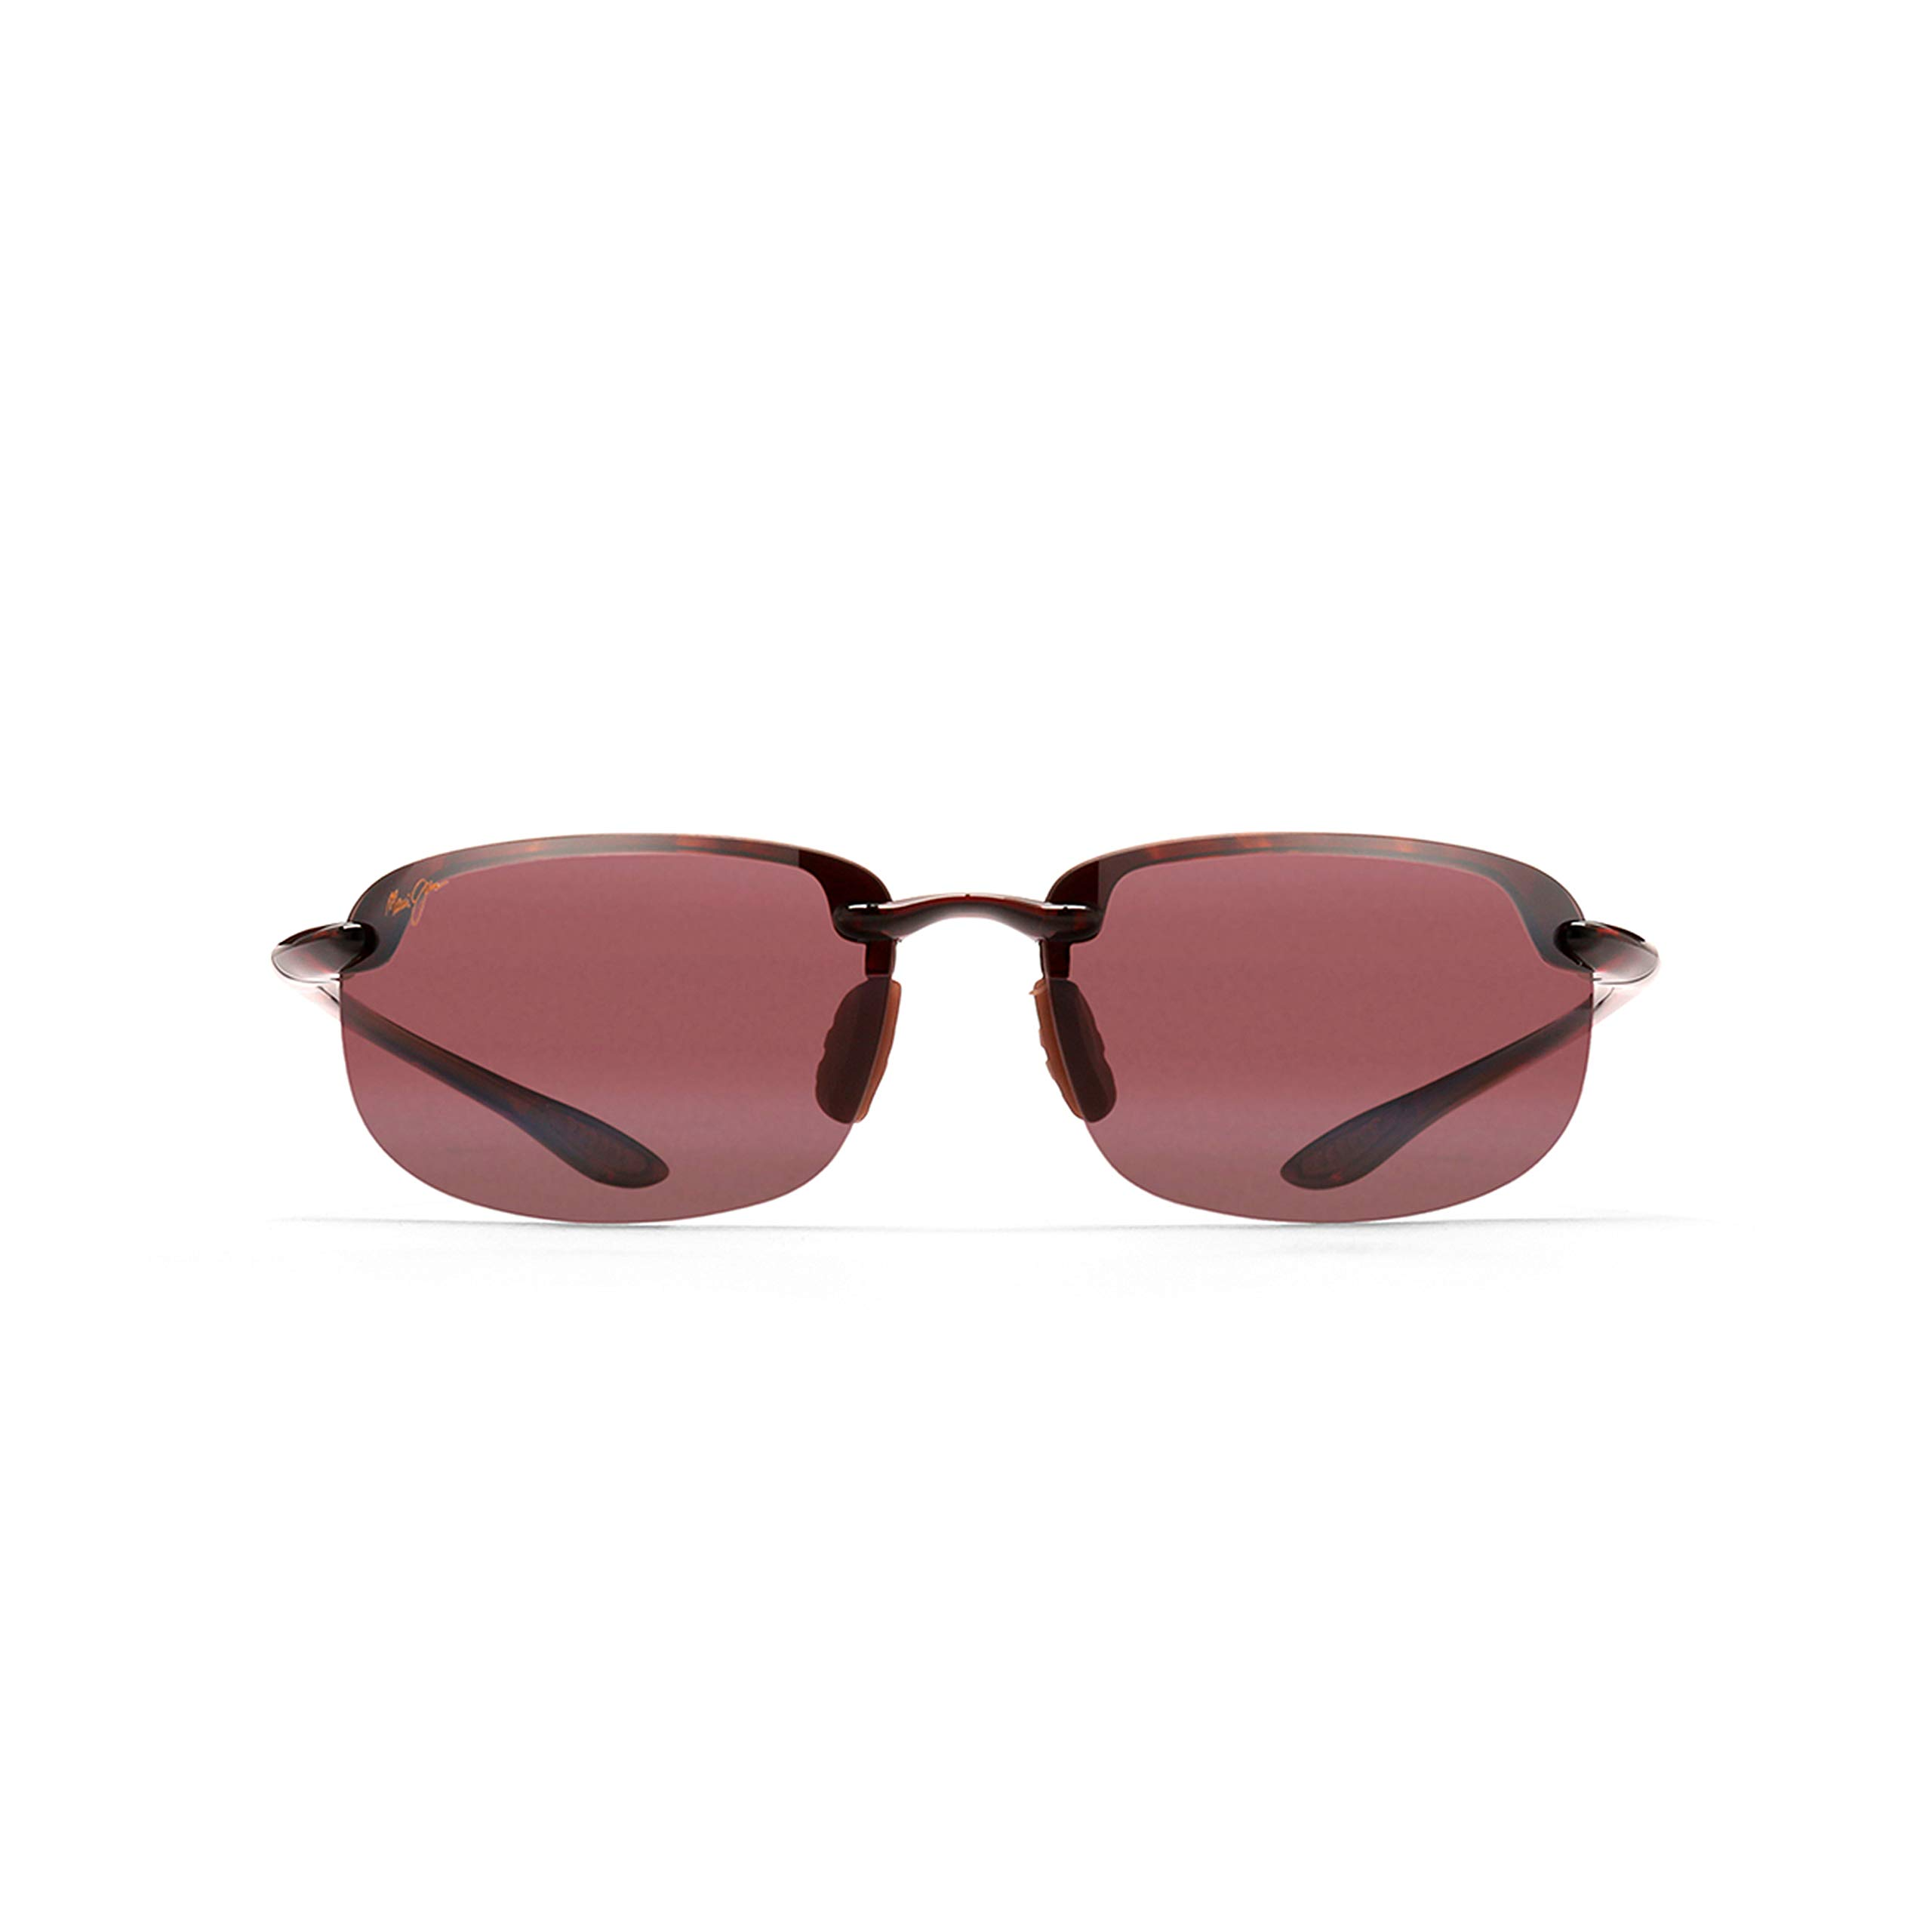 612e761c70a Best Rated in Sunglasses   Helpful Customer Reviews - Amazon.com